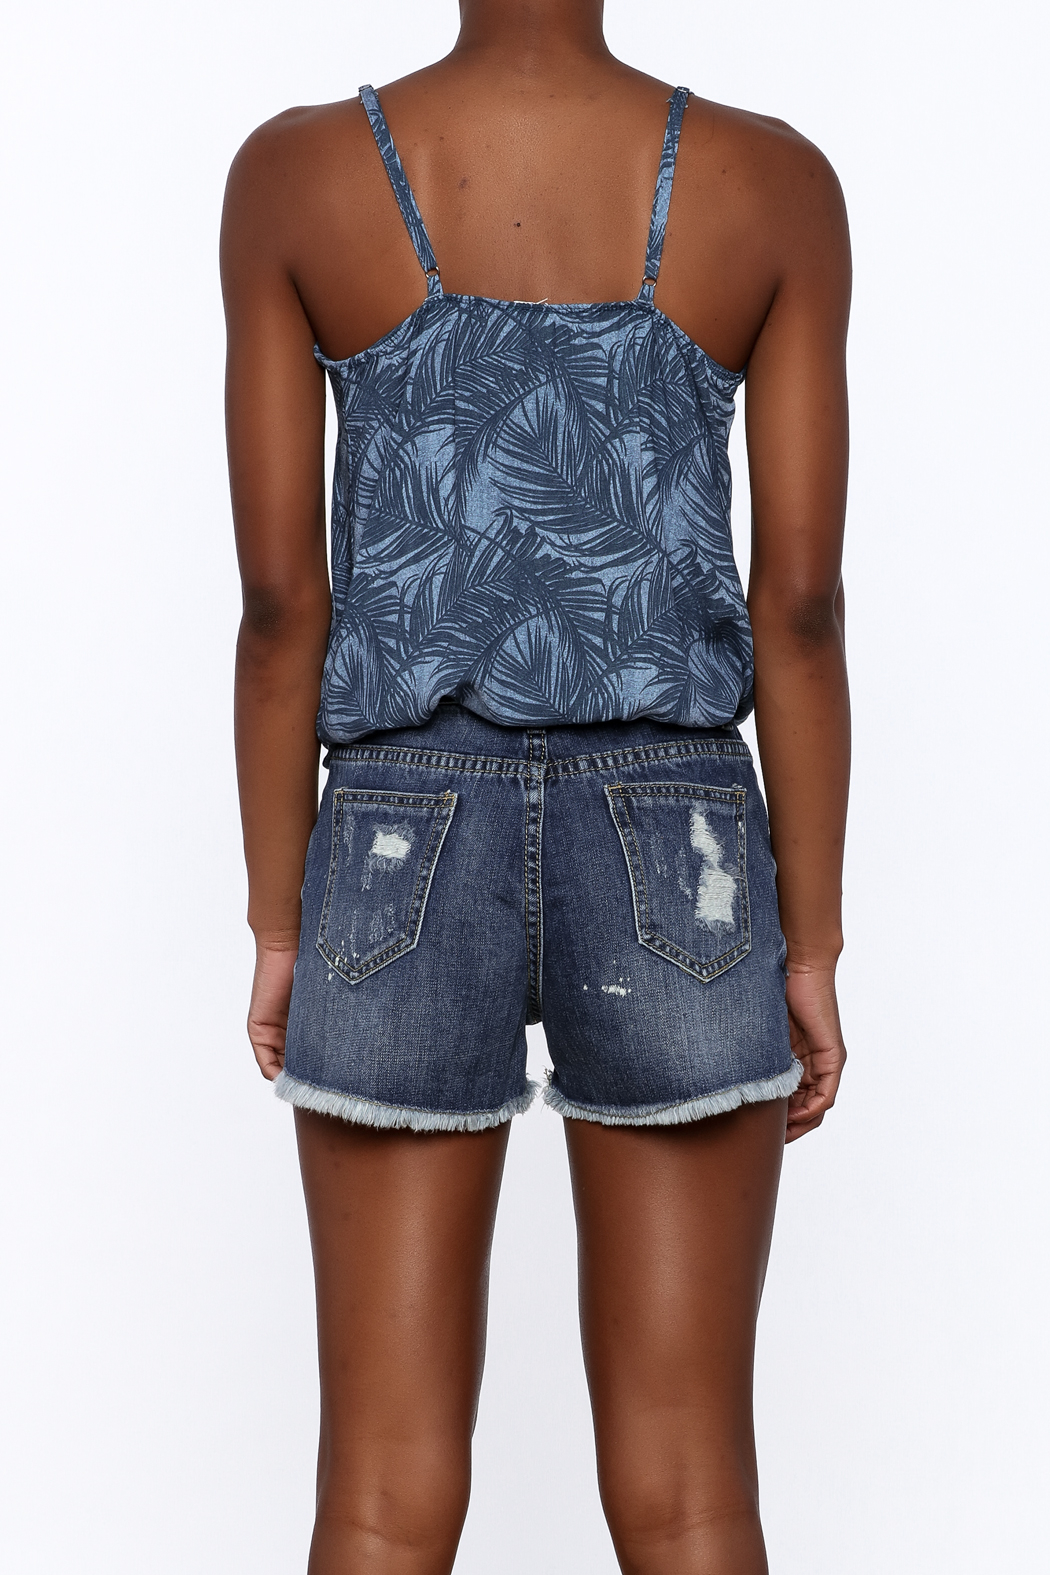 Surf Gypsy Palm Tree Tank Top - Back Cropped Image